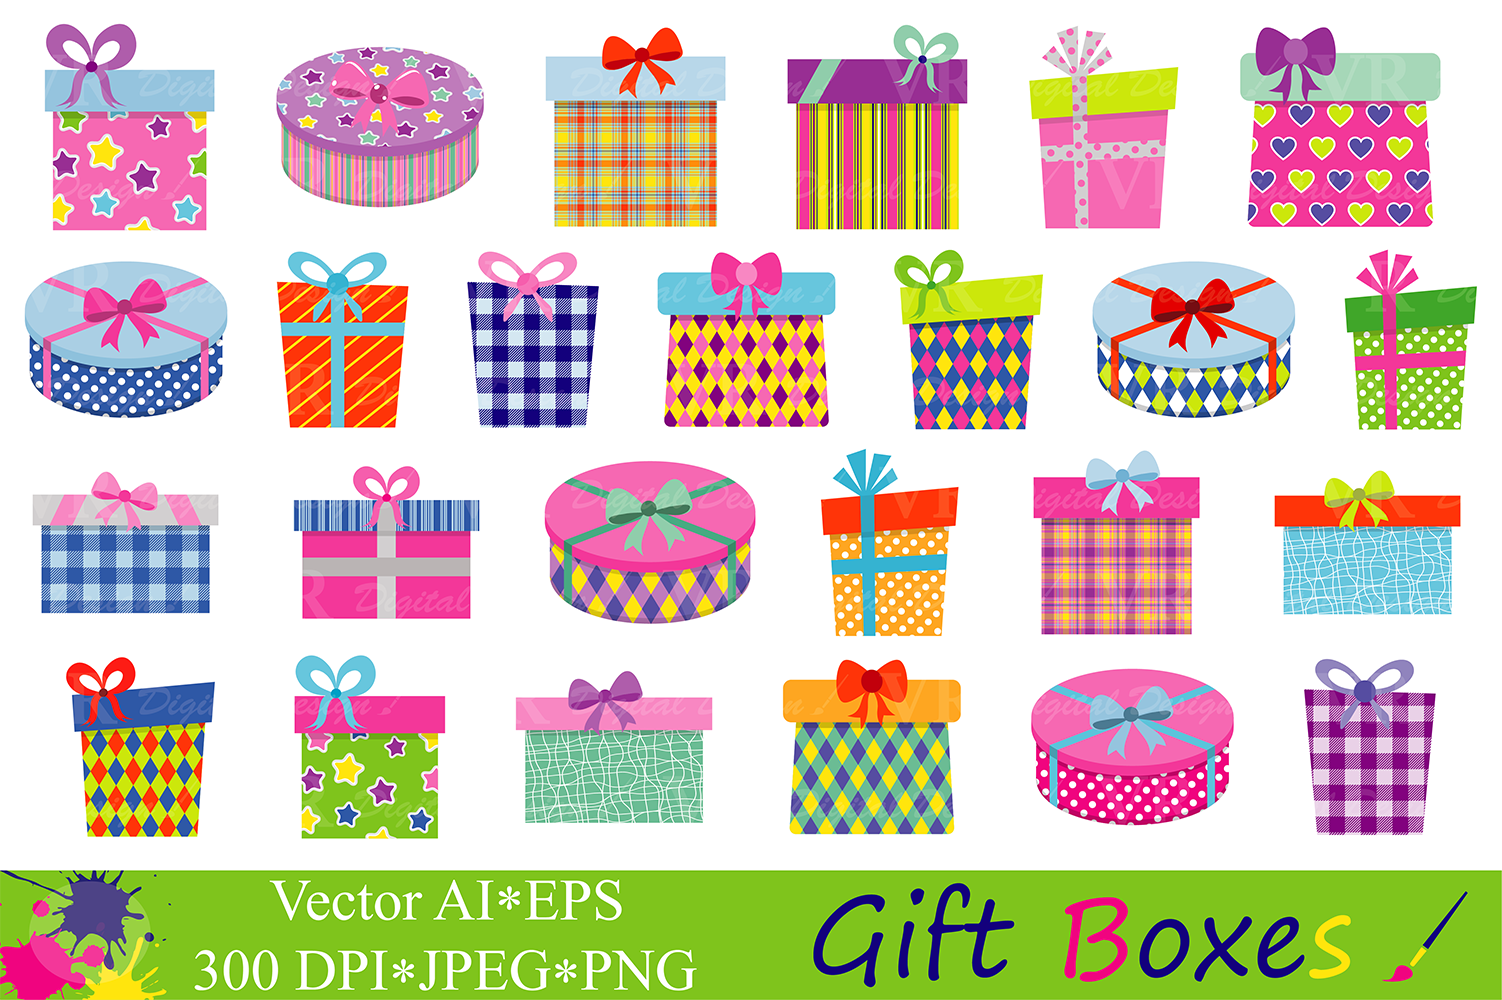 Gift Boxes Clipart Birthday Party Presents Clip Art Gifts vector graphics  Present illustrations.